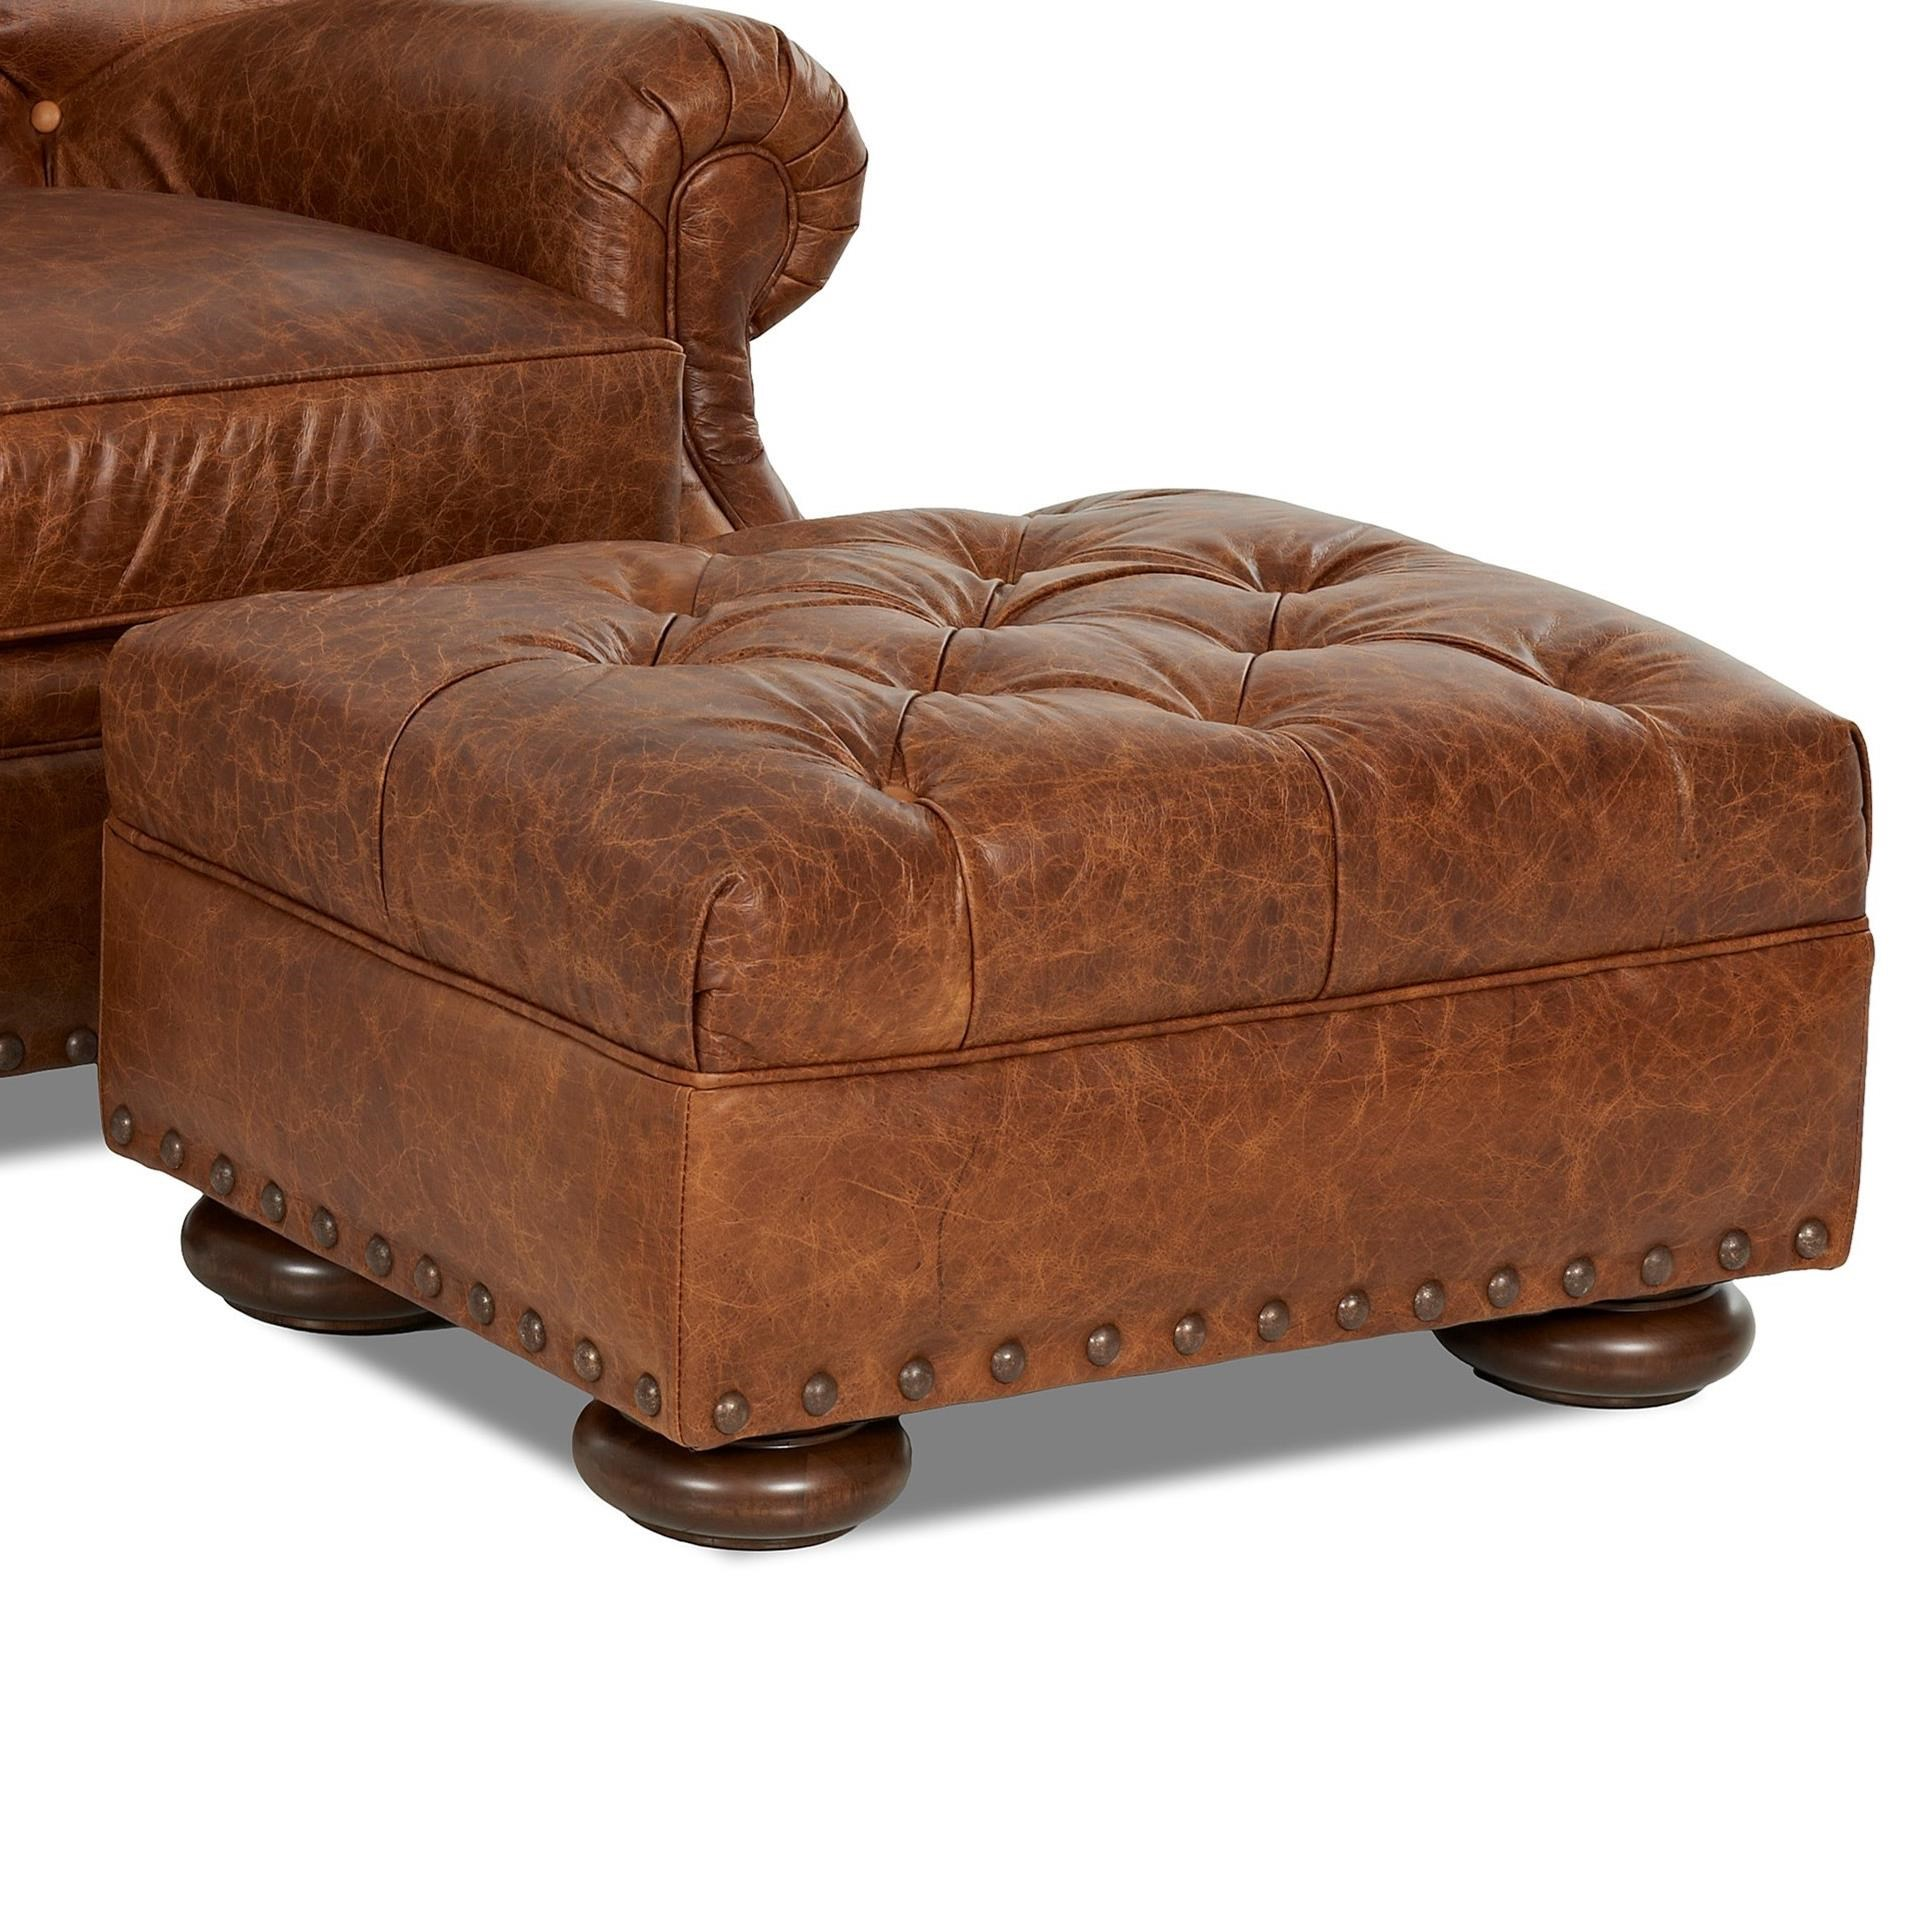 Klaussner Aspen Ottoman - Item Number: LD39910 OTTO-CHAPS SADDLE